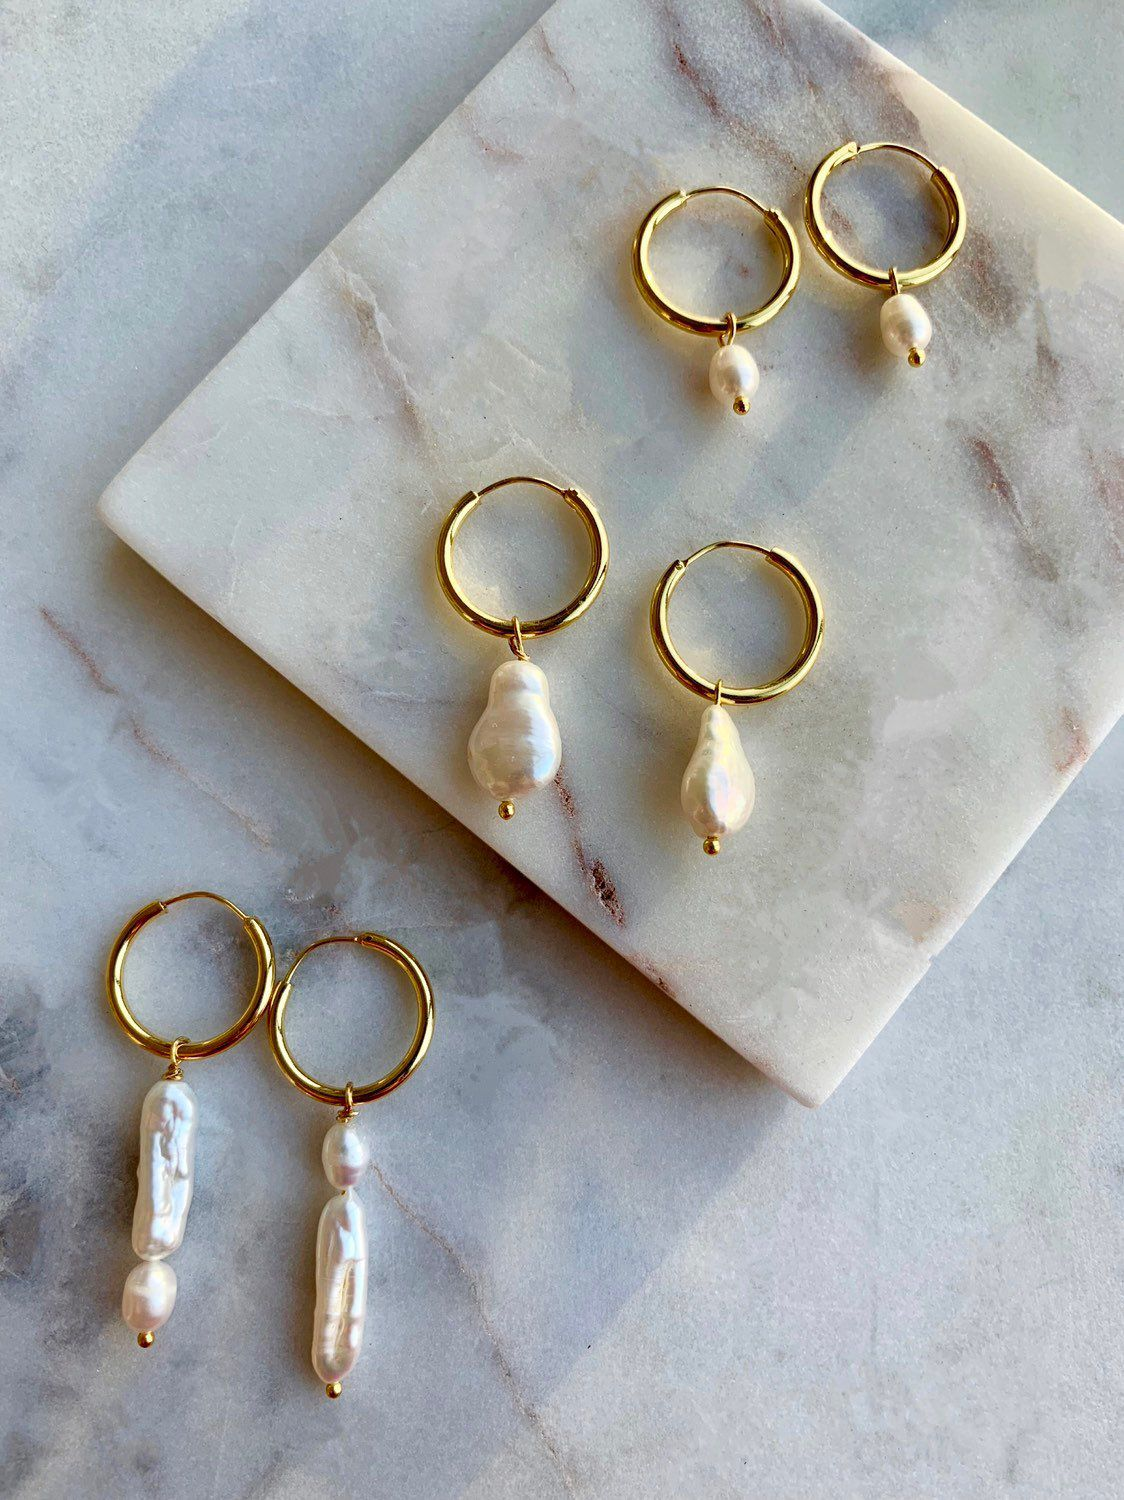 Pearl Hoop Earrings - Freshwater Pearl Earrings - White Pearl Earrings - Baroque Pearl Earrings - Pearl Hoops Earrings - Hoop Earrings P #pearljewelry